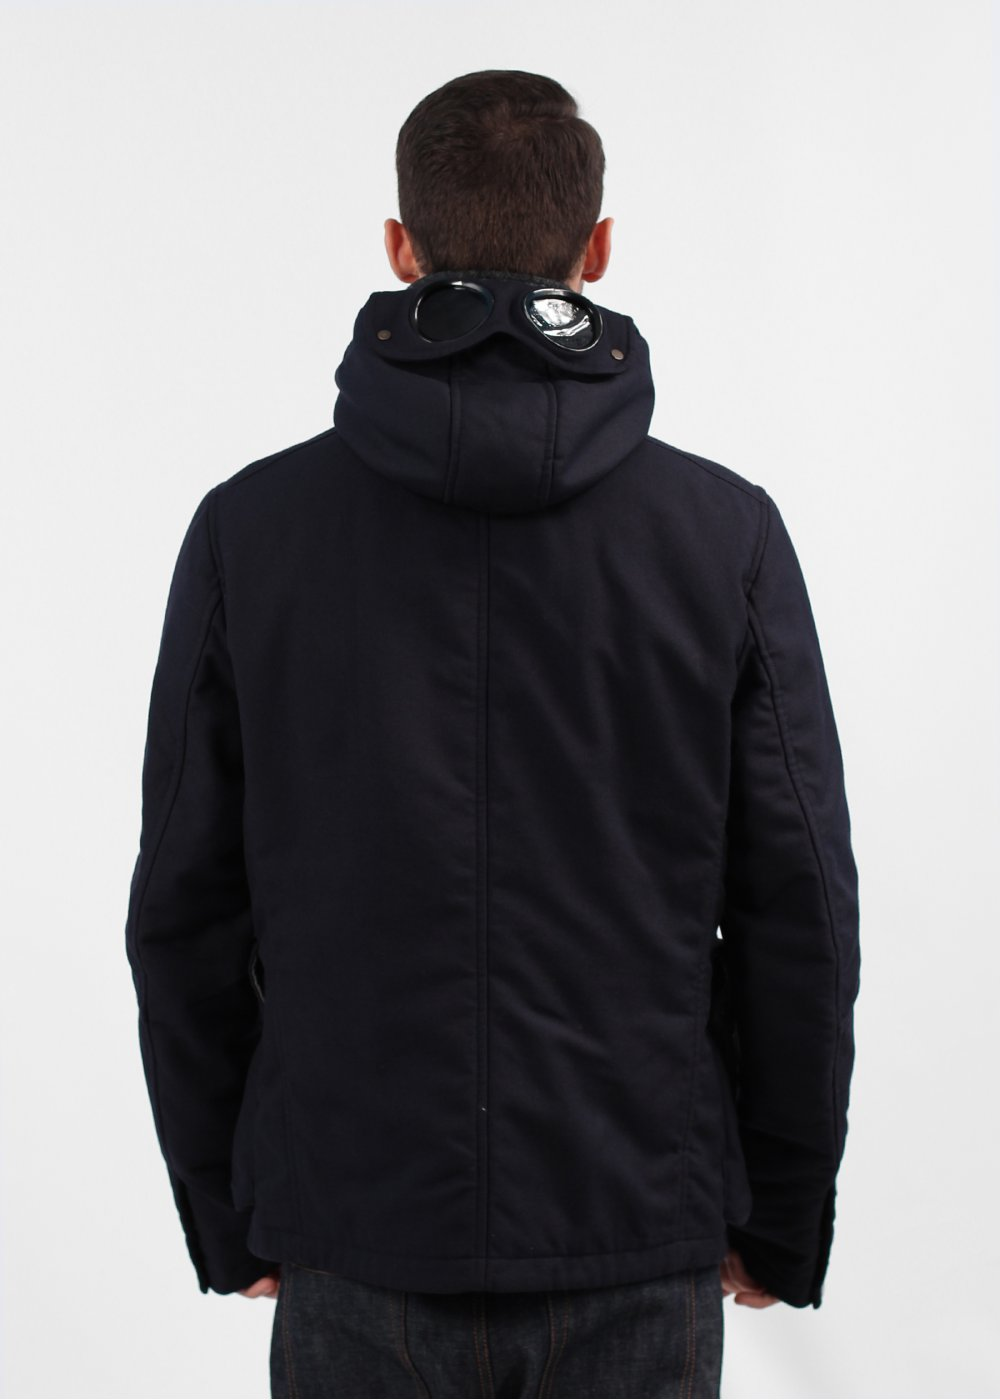 Cp company leather jacket